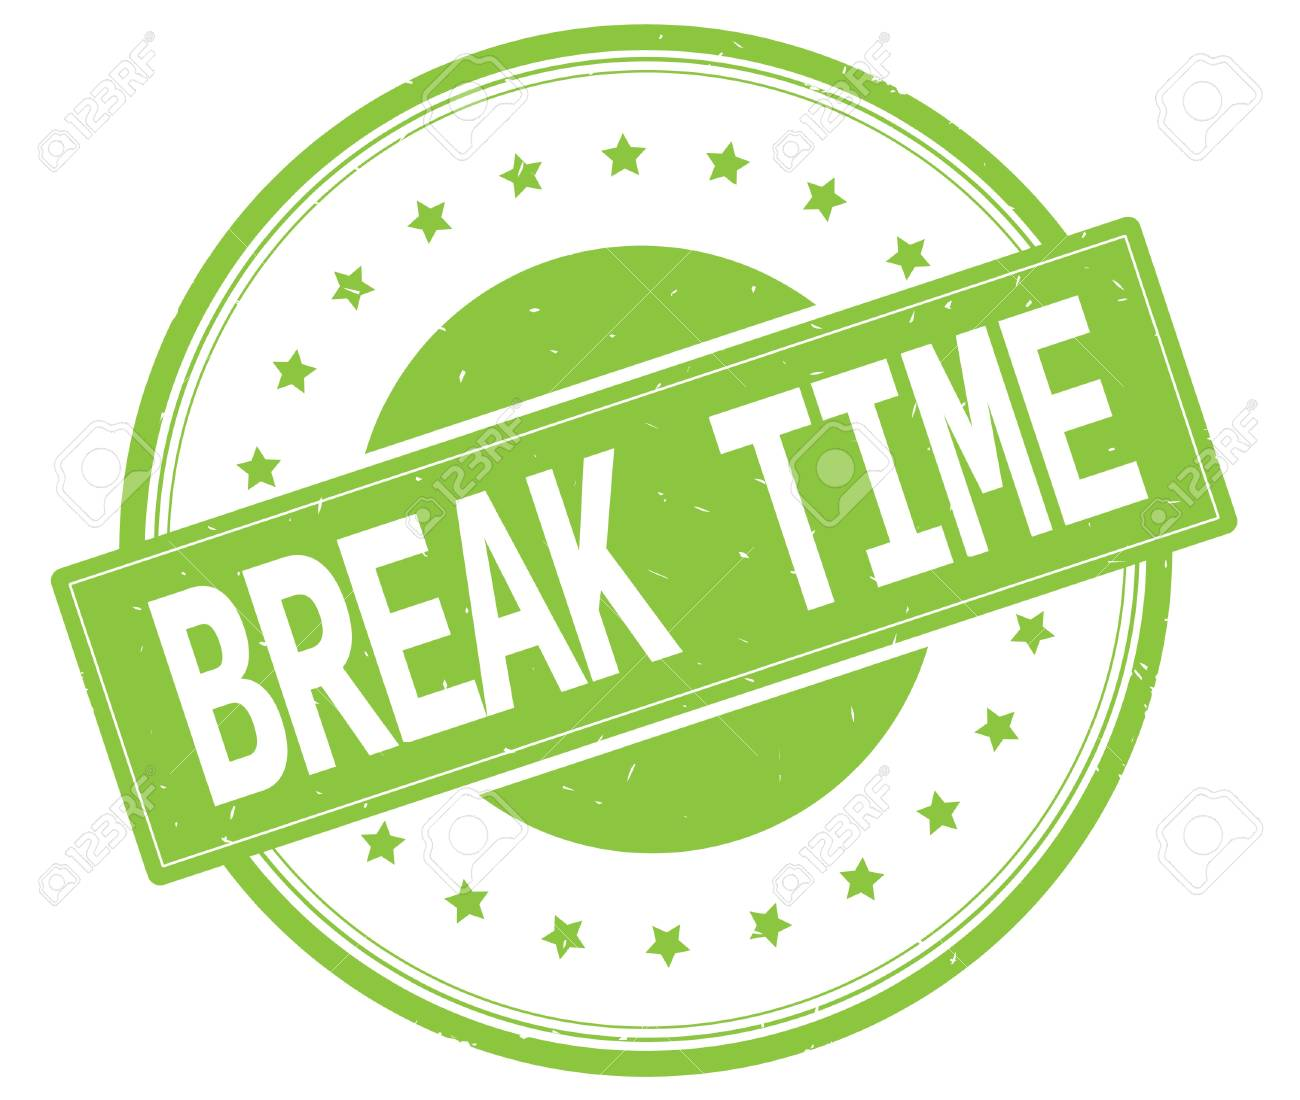 BREAK TIME Text On Round Vintage Rubber Stamp Sign With Stars Green Color